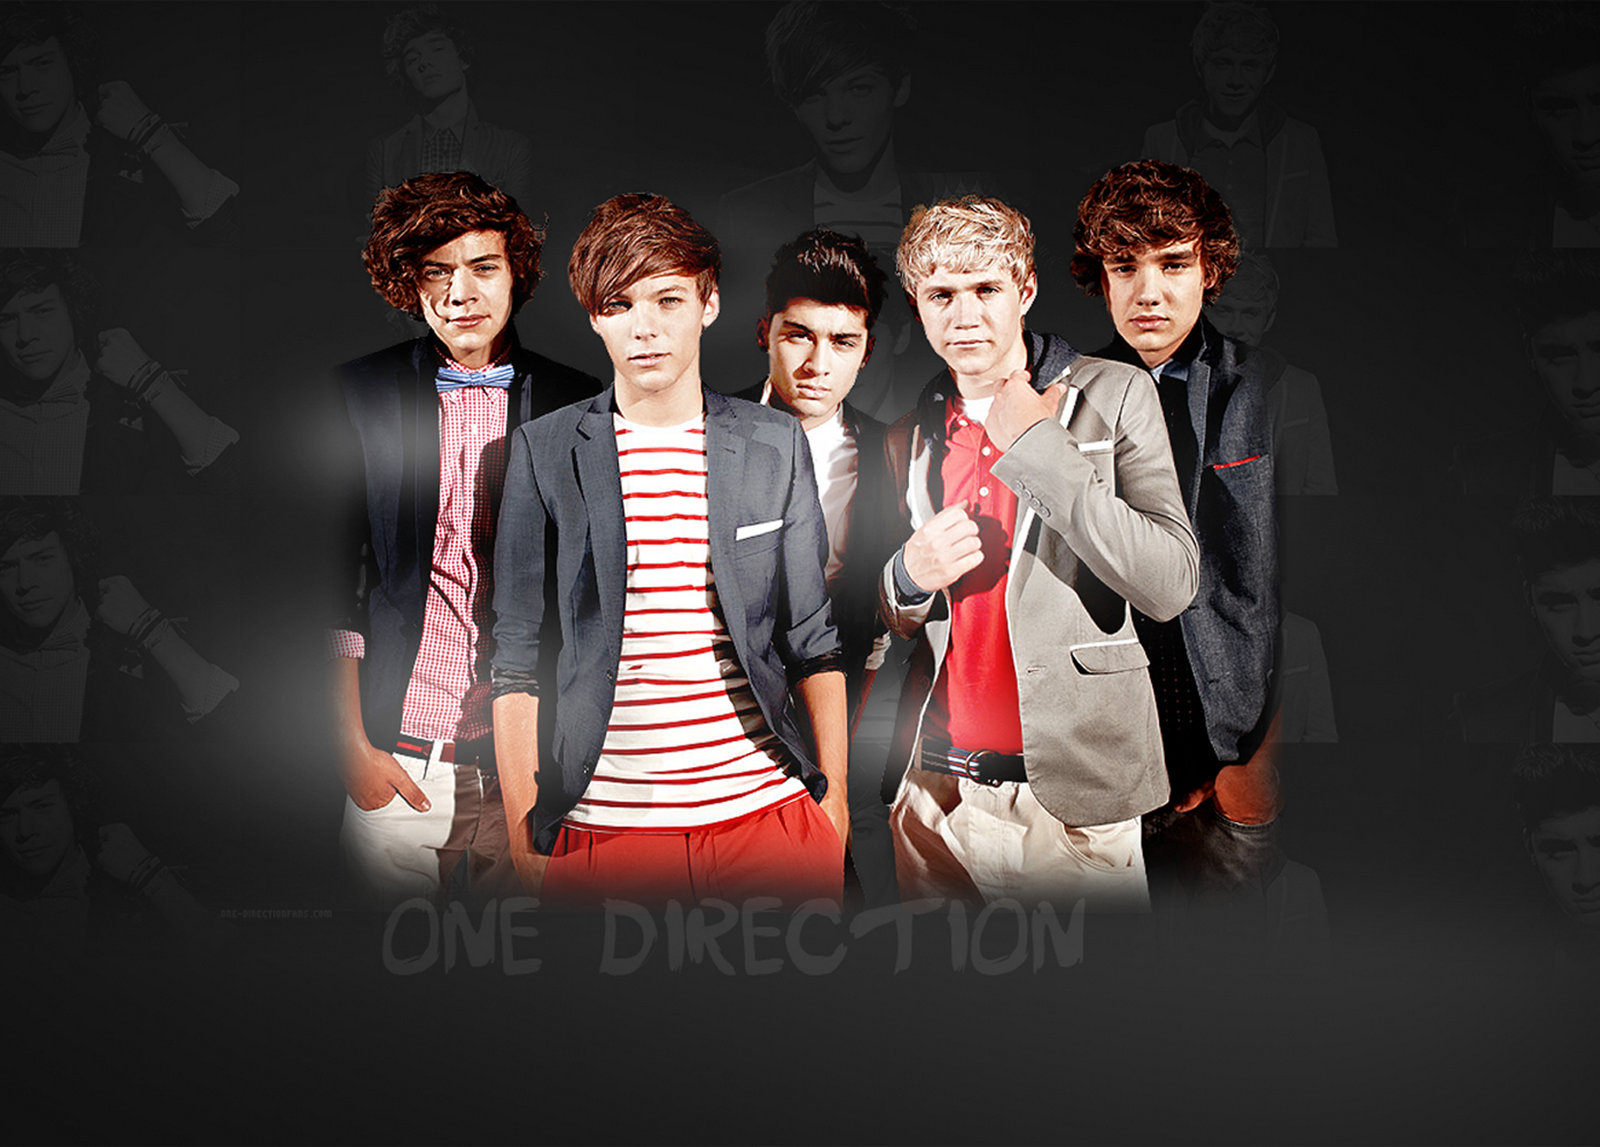 One Direction Photos One Direction Wallpaper For Iphone 5